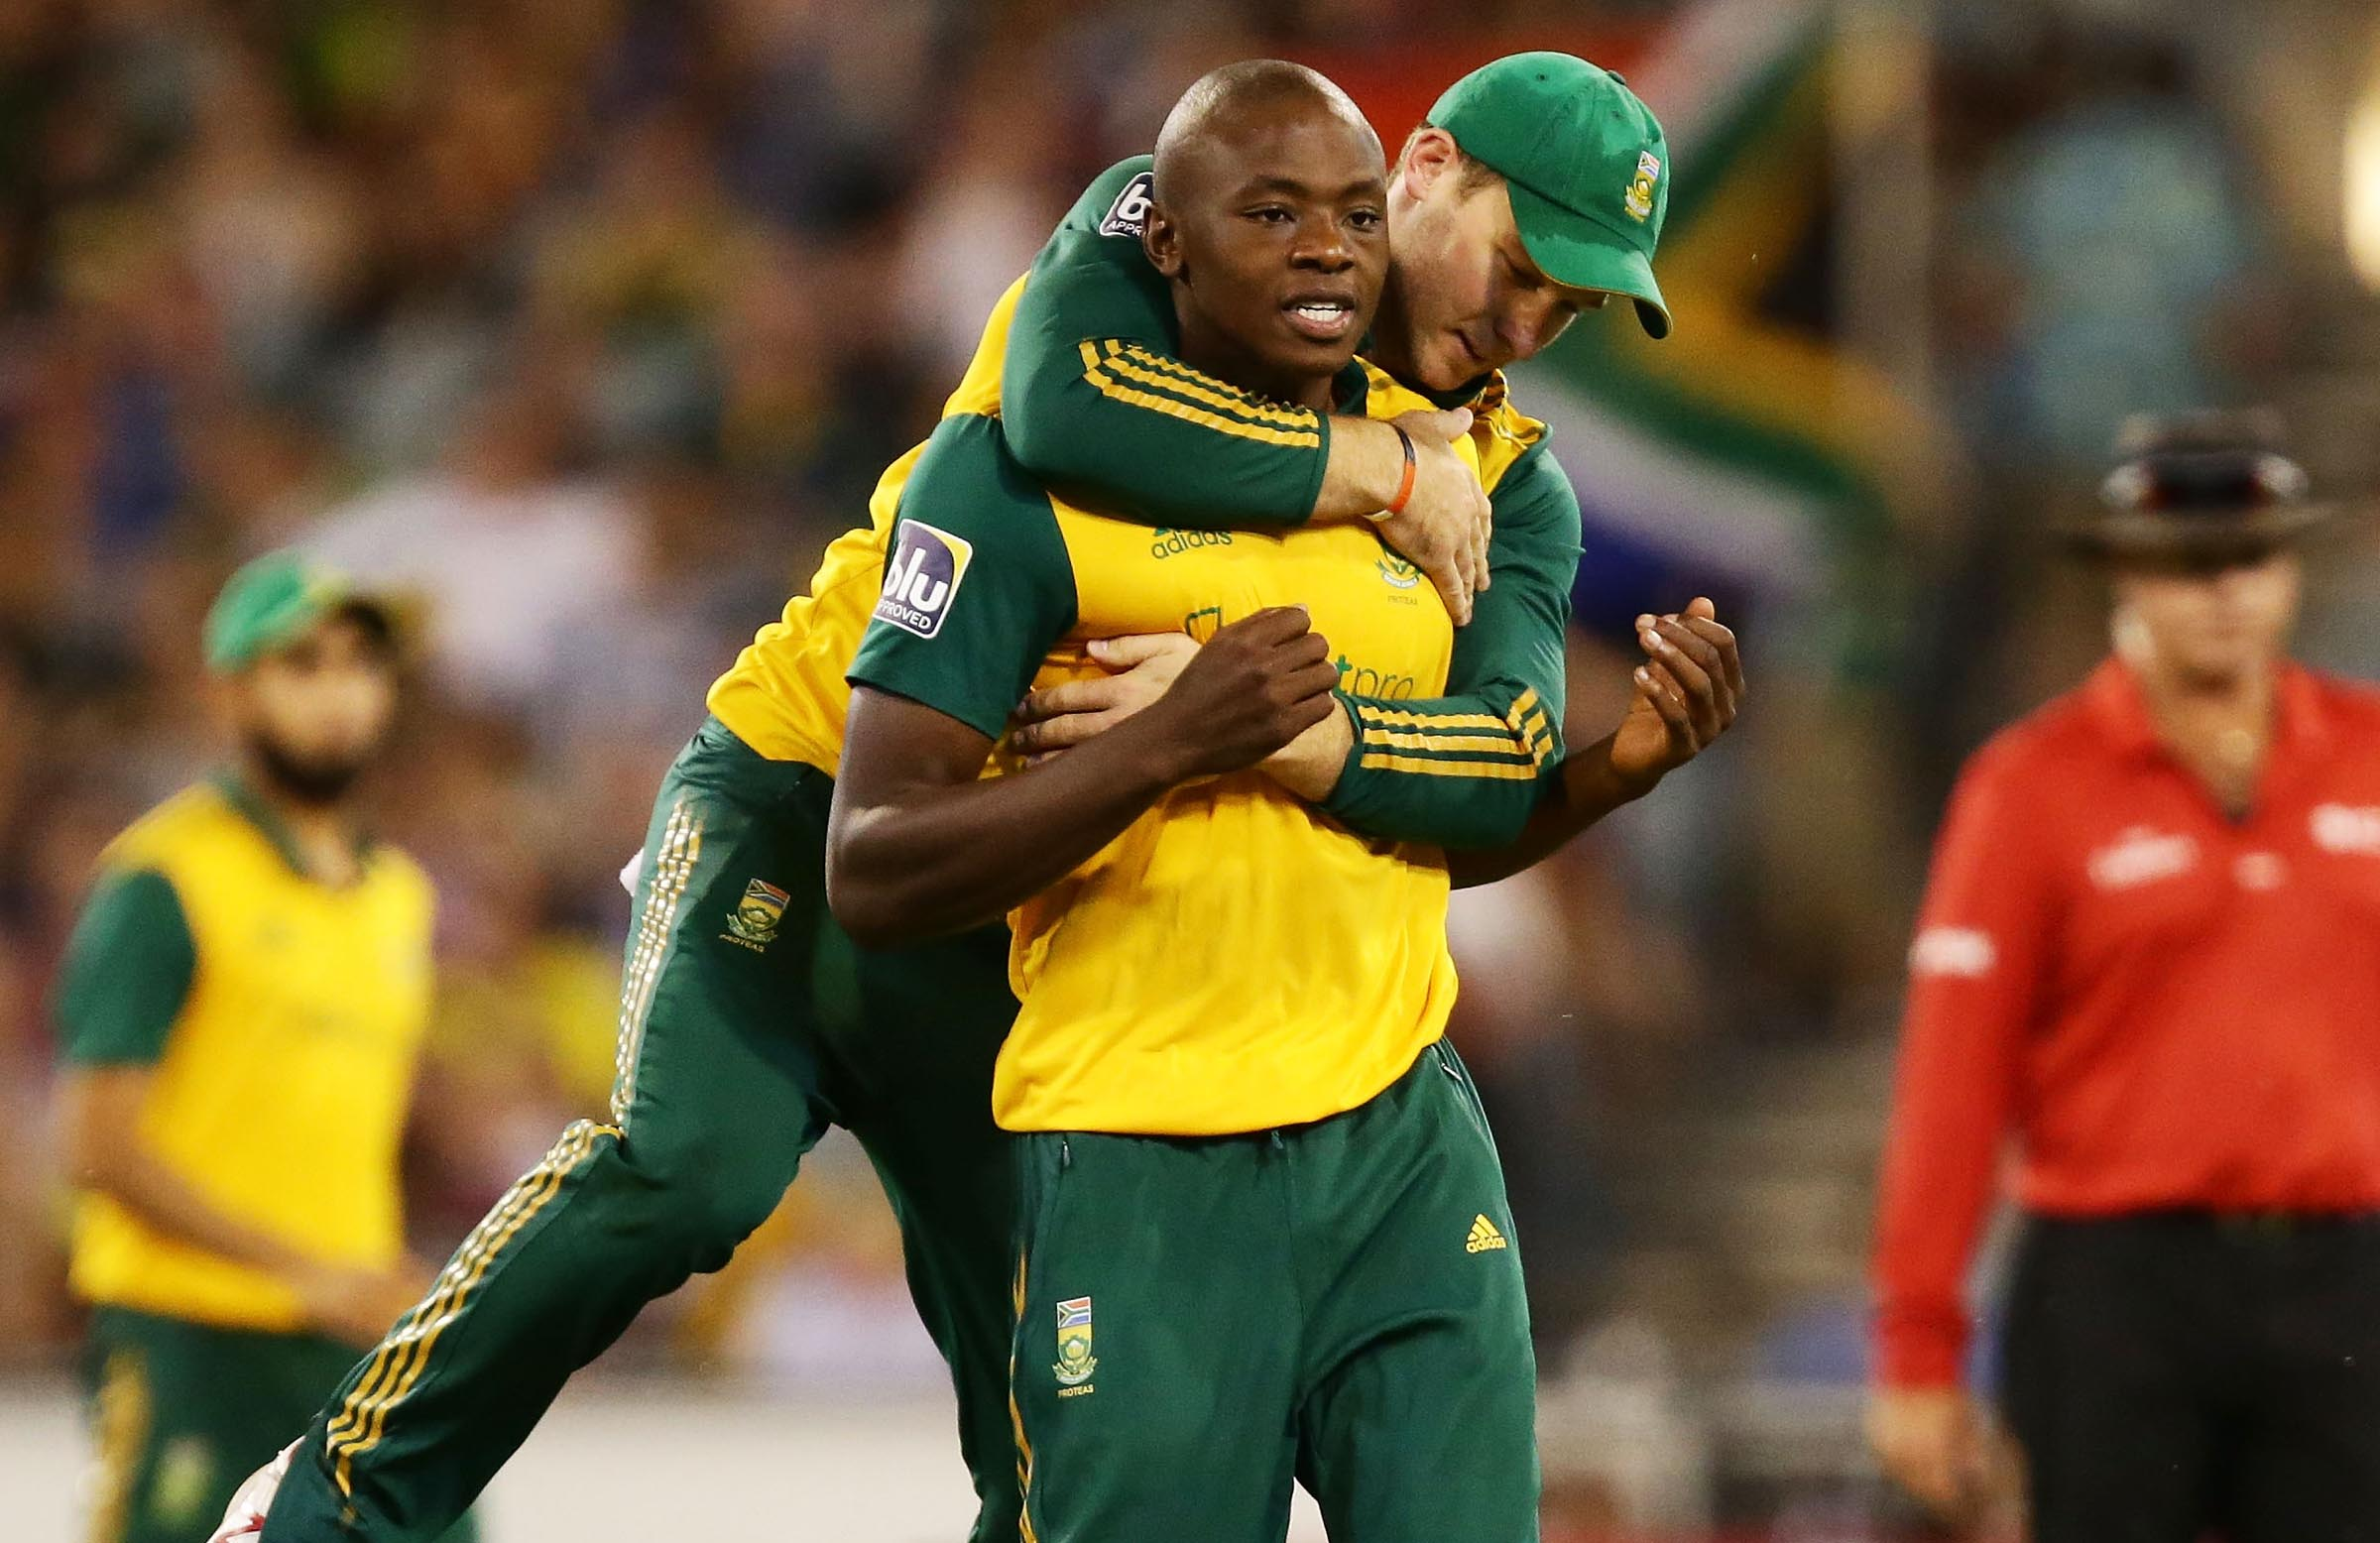 Rabada celebrates after taking Maxwell's wicket in 2014 // Getty